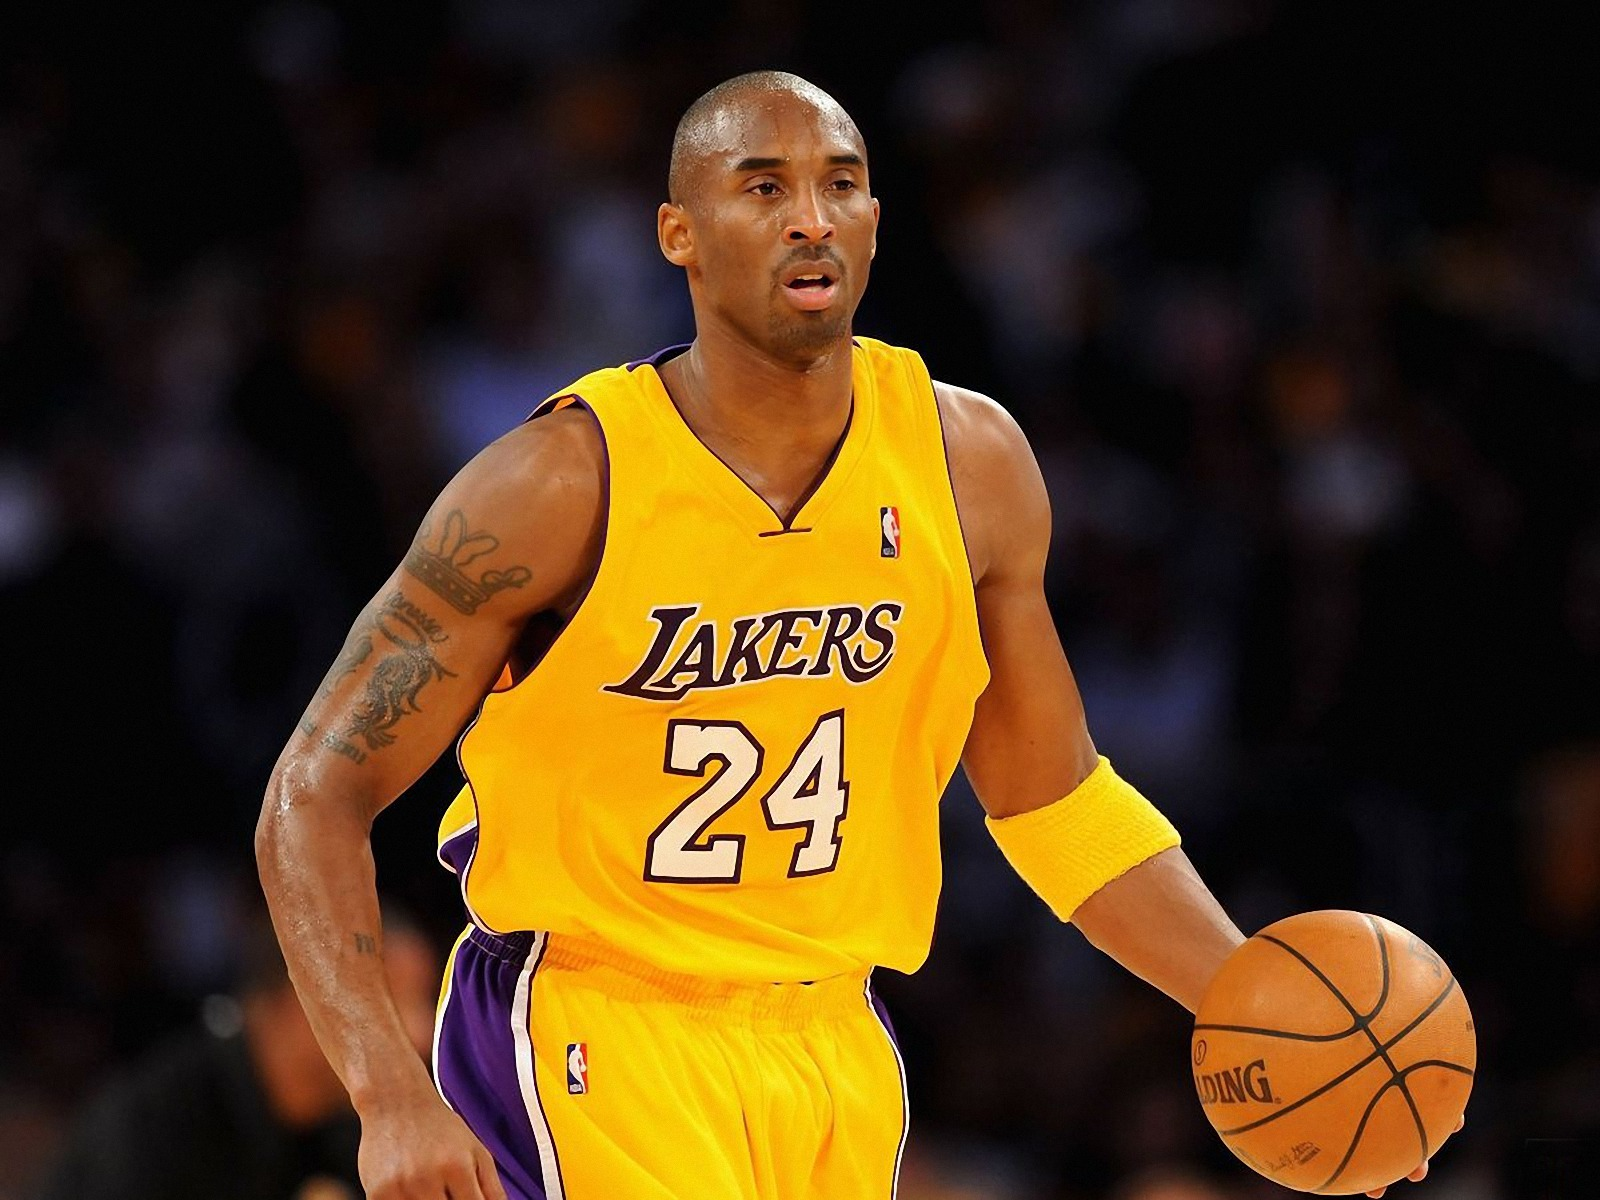 Legendary NBA Player Kobe Bryant Reportedly Killed in California Helicopter Crash